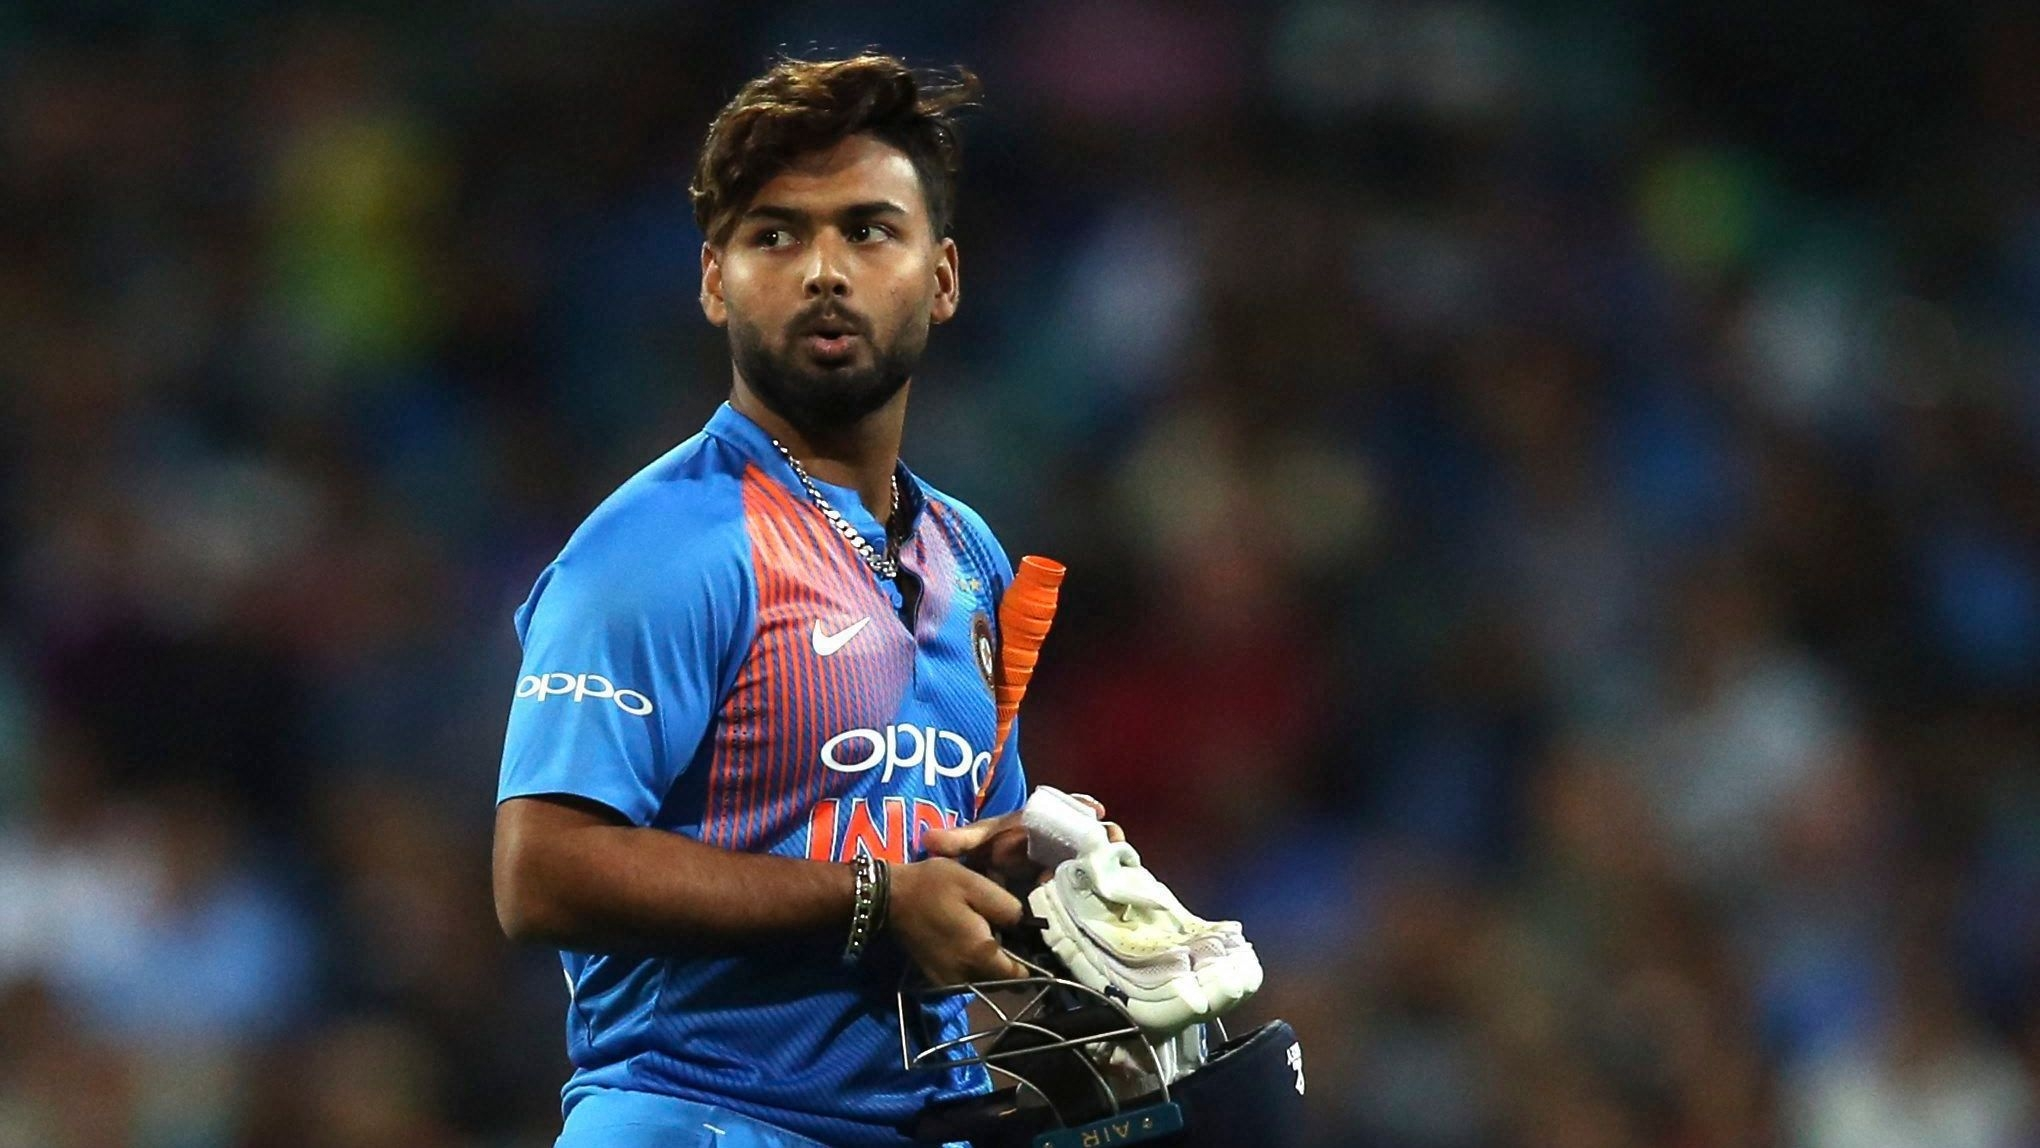 Will These 5 Players Make Their Way Into India's World Cup Squad?